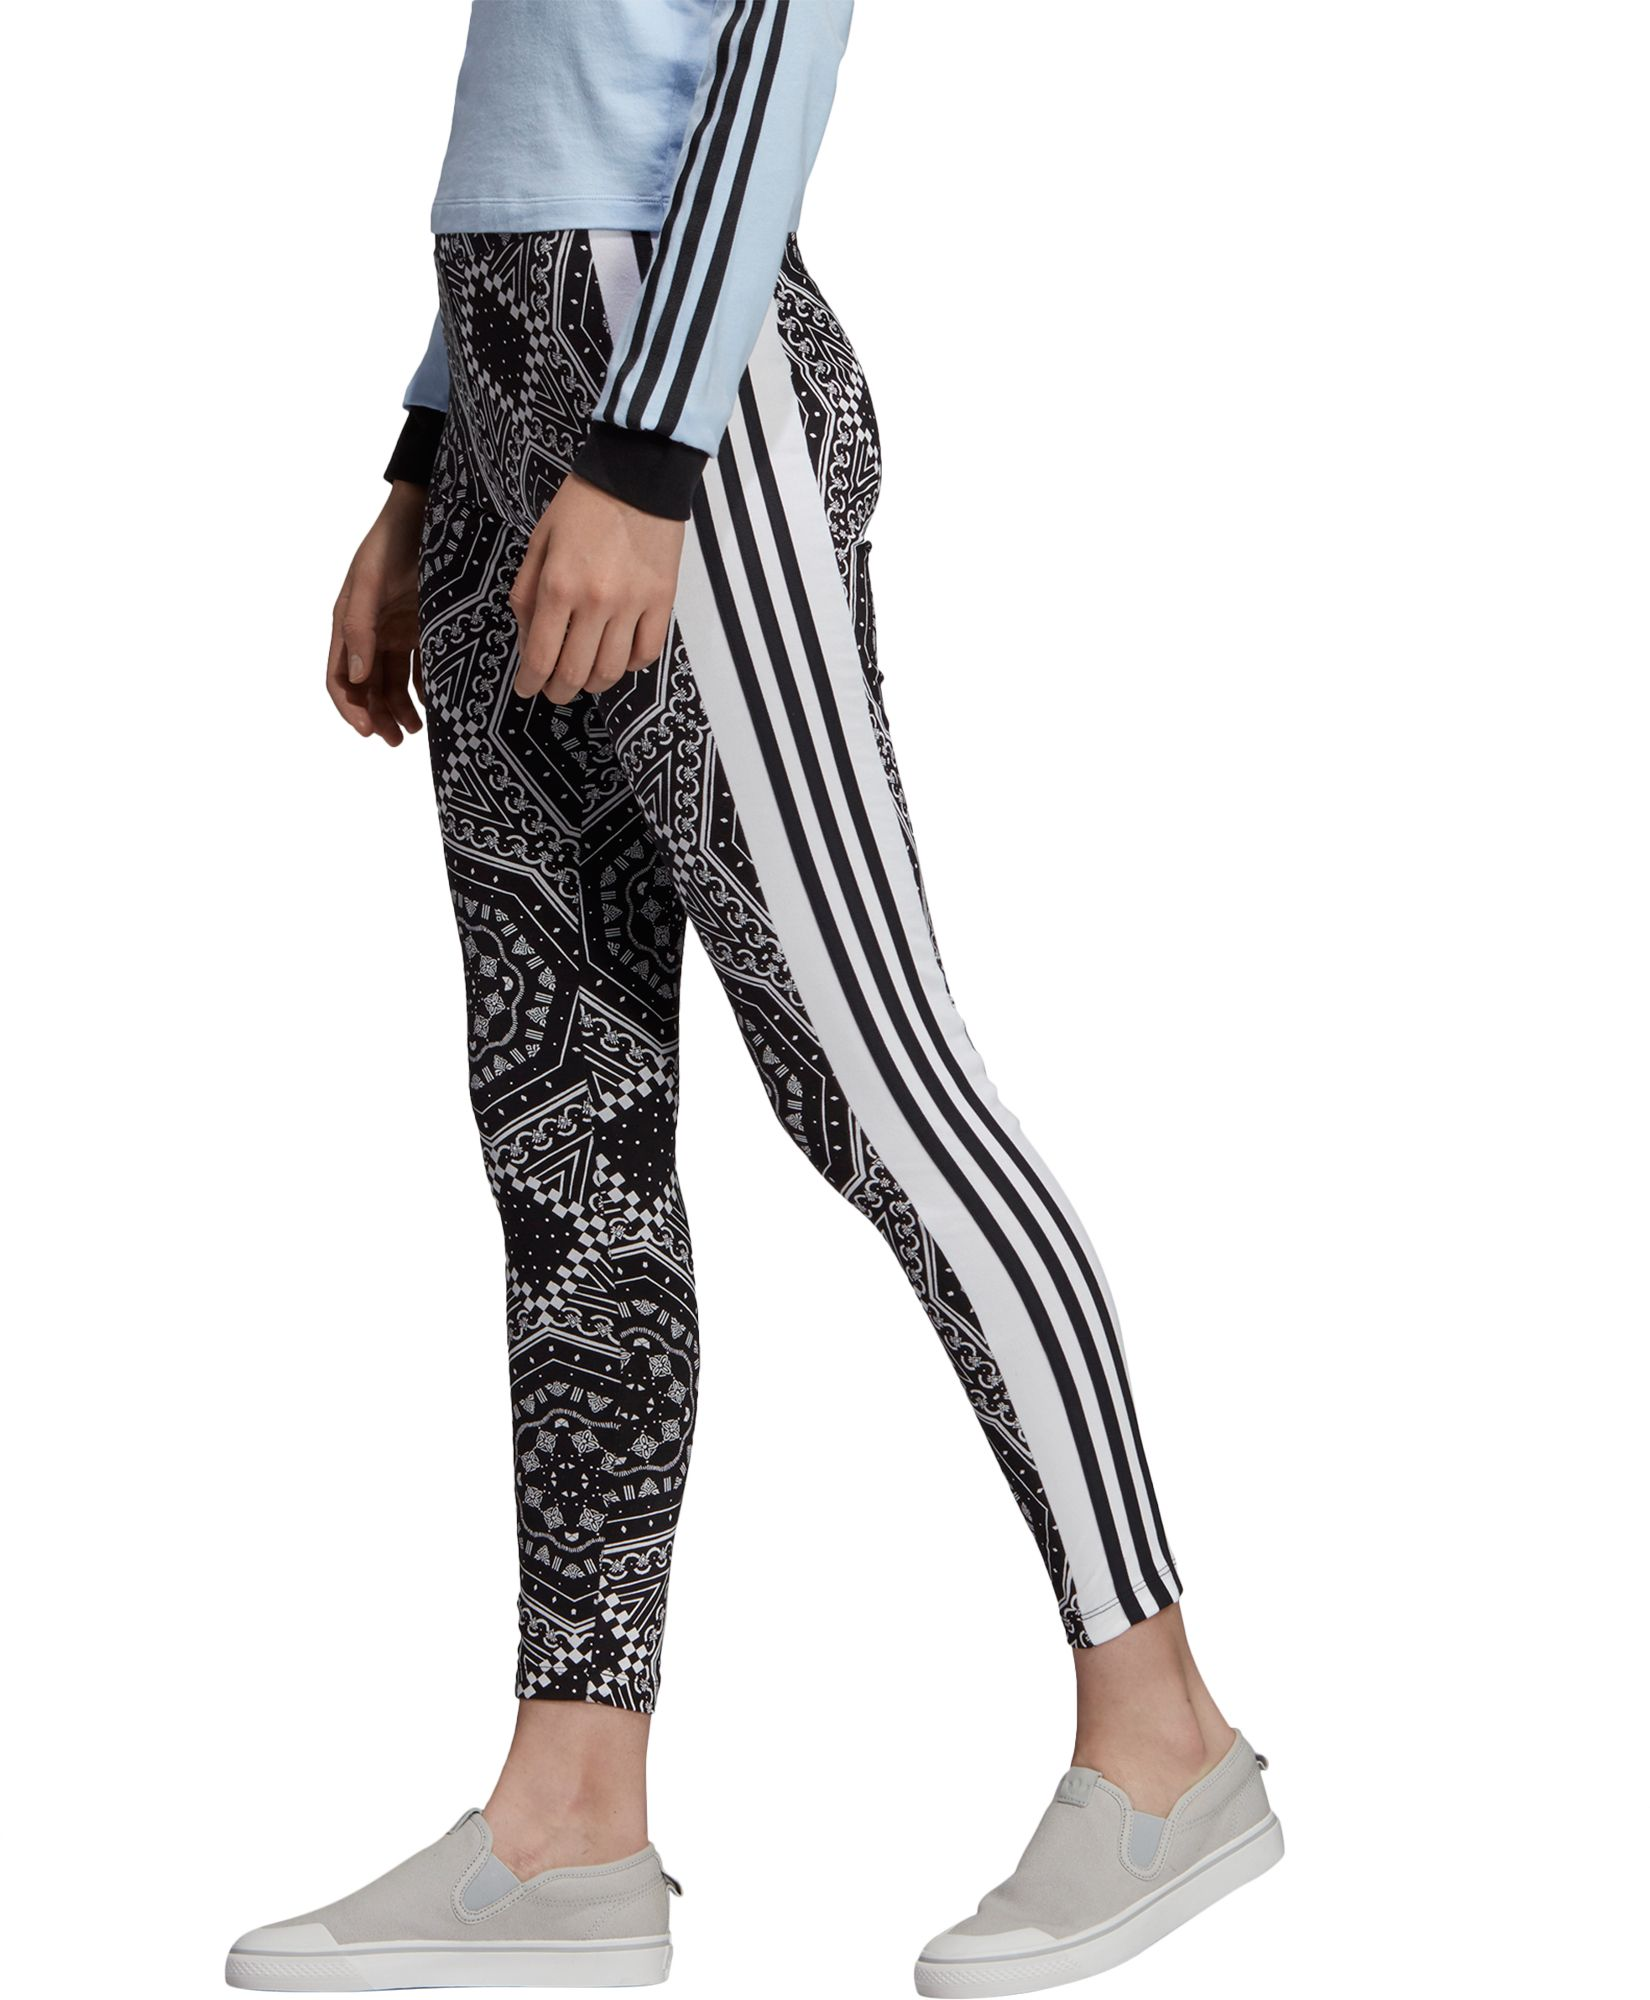 09d15cee7fadc6 adidas Originals Women's Printed Tights | DICK'S Sporting ...